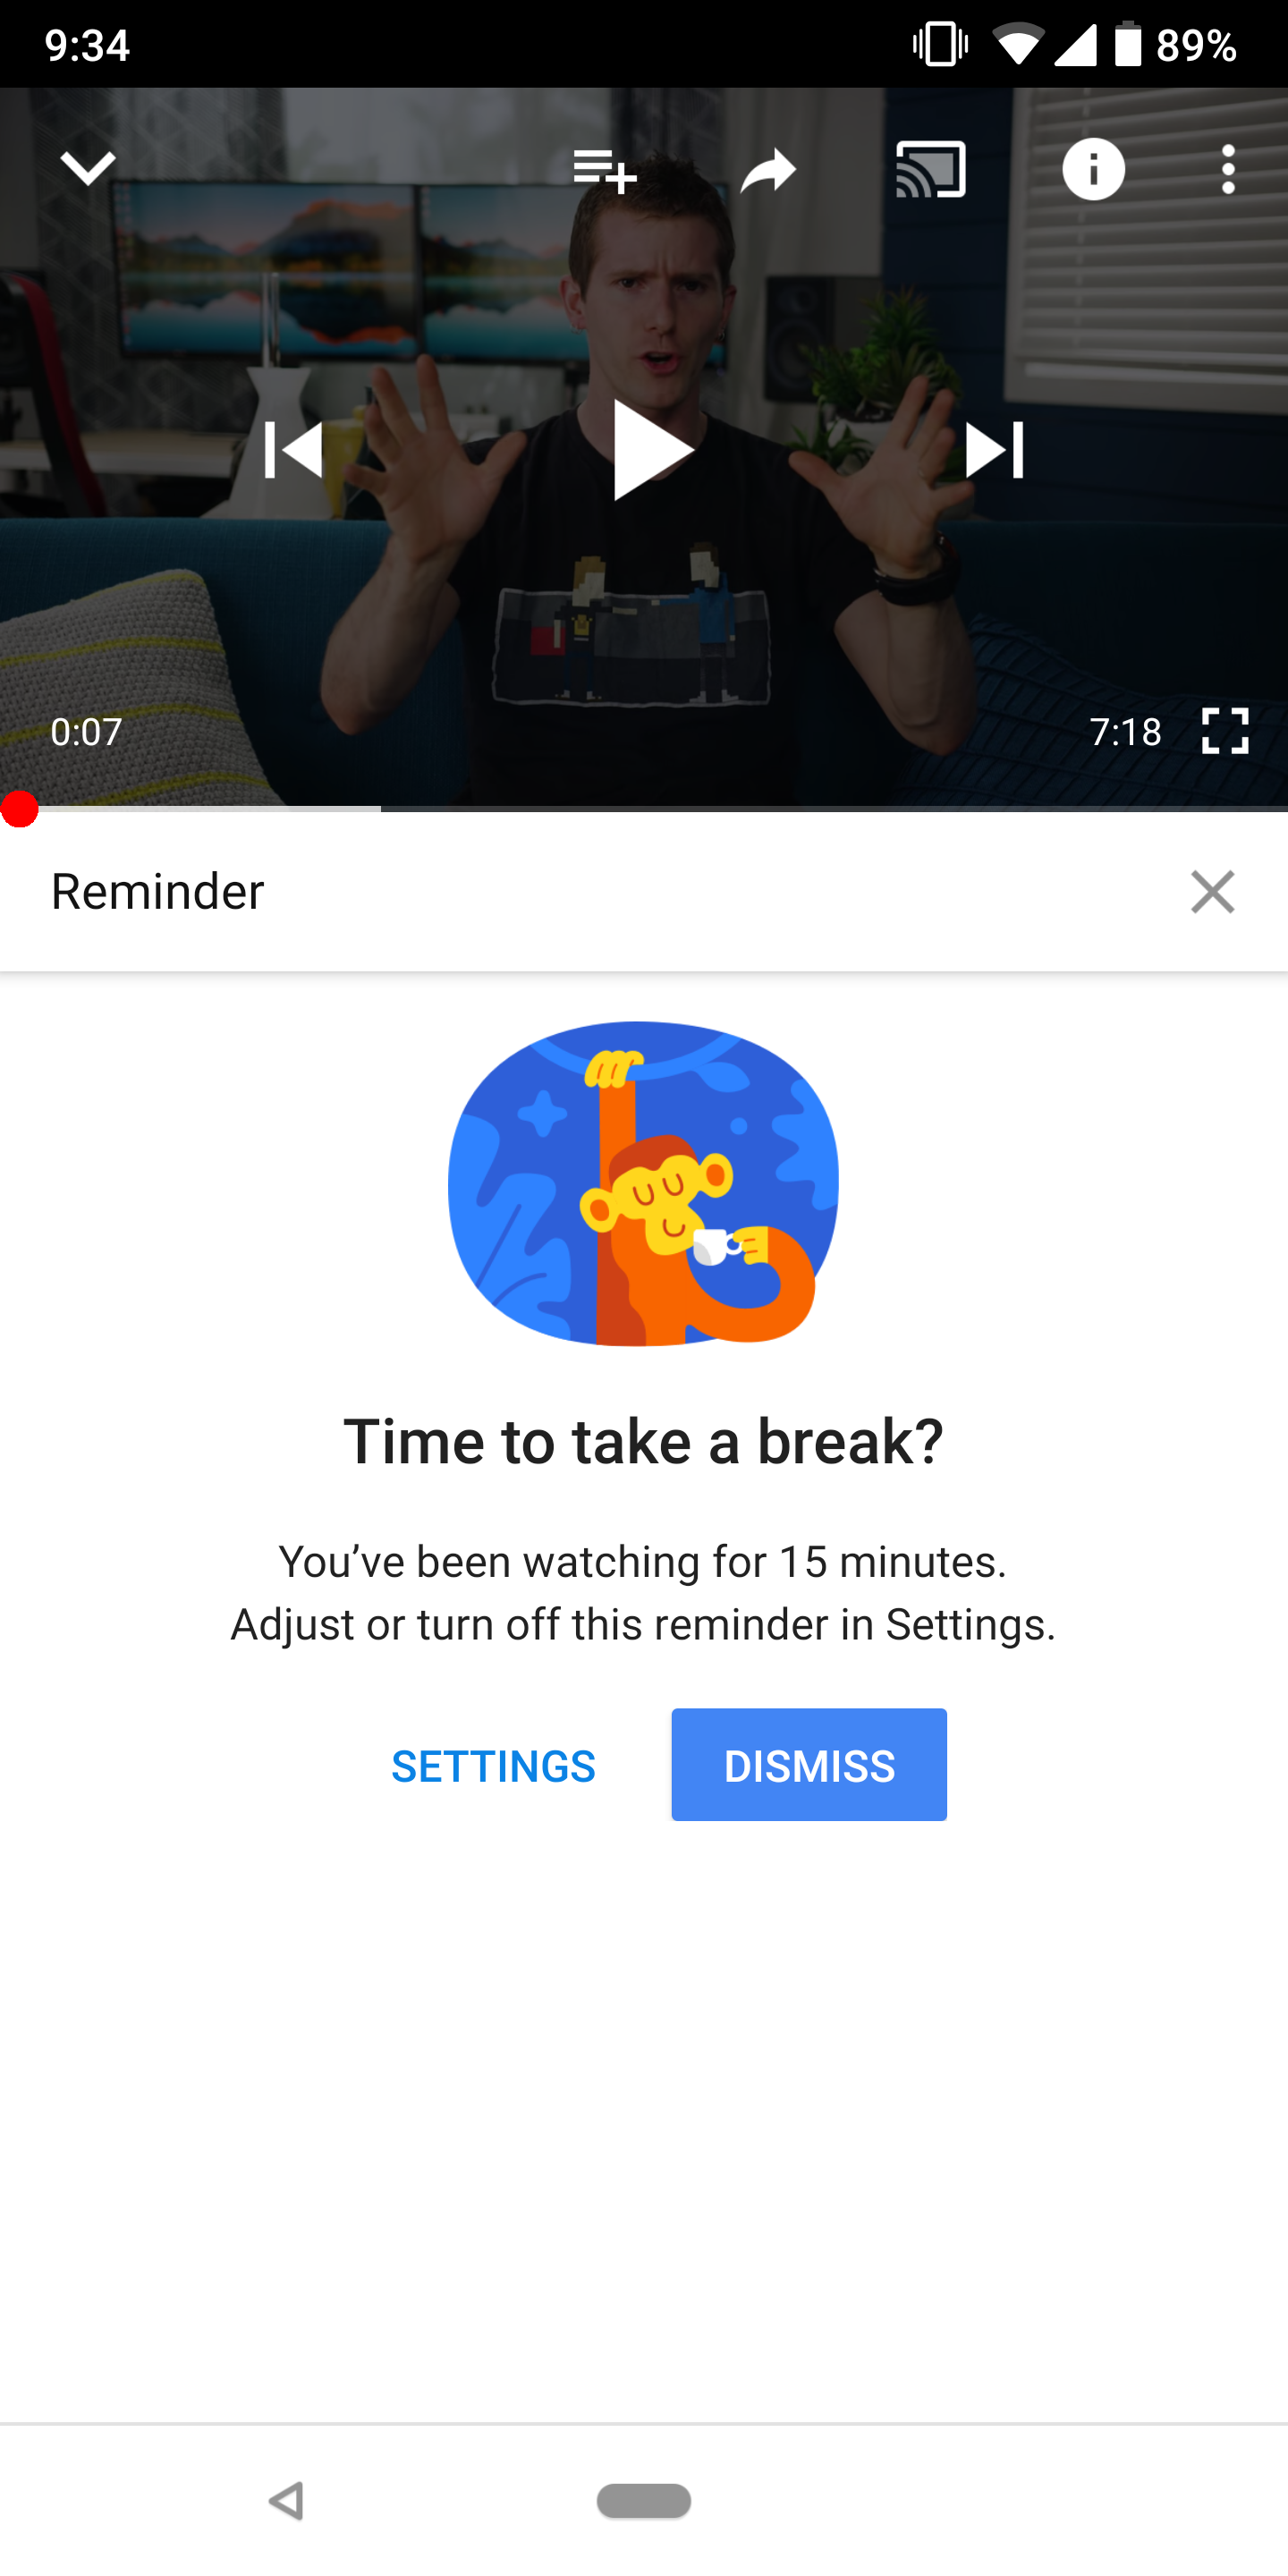 Youtube Notification Offers To Resume A Paused Video On: YouTube Now Reminds Users To Stop Spending Too Much Time